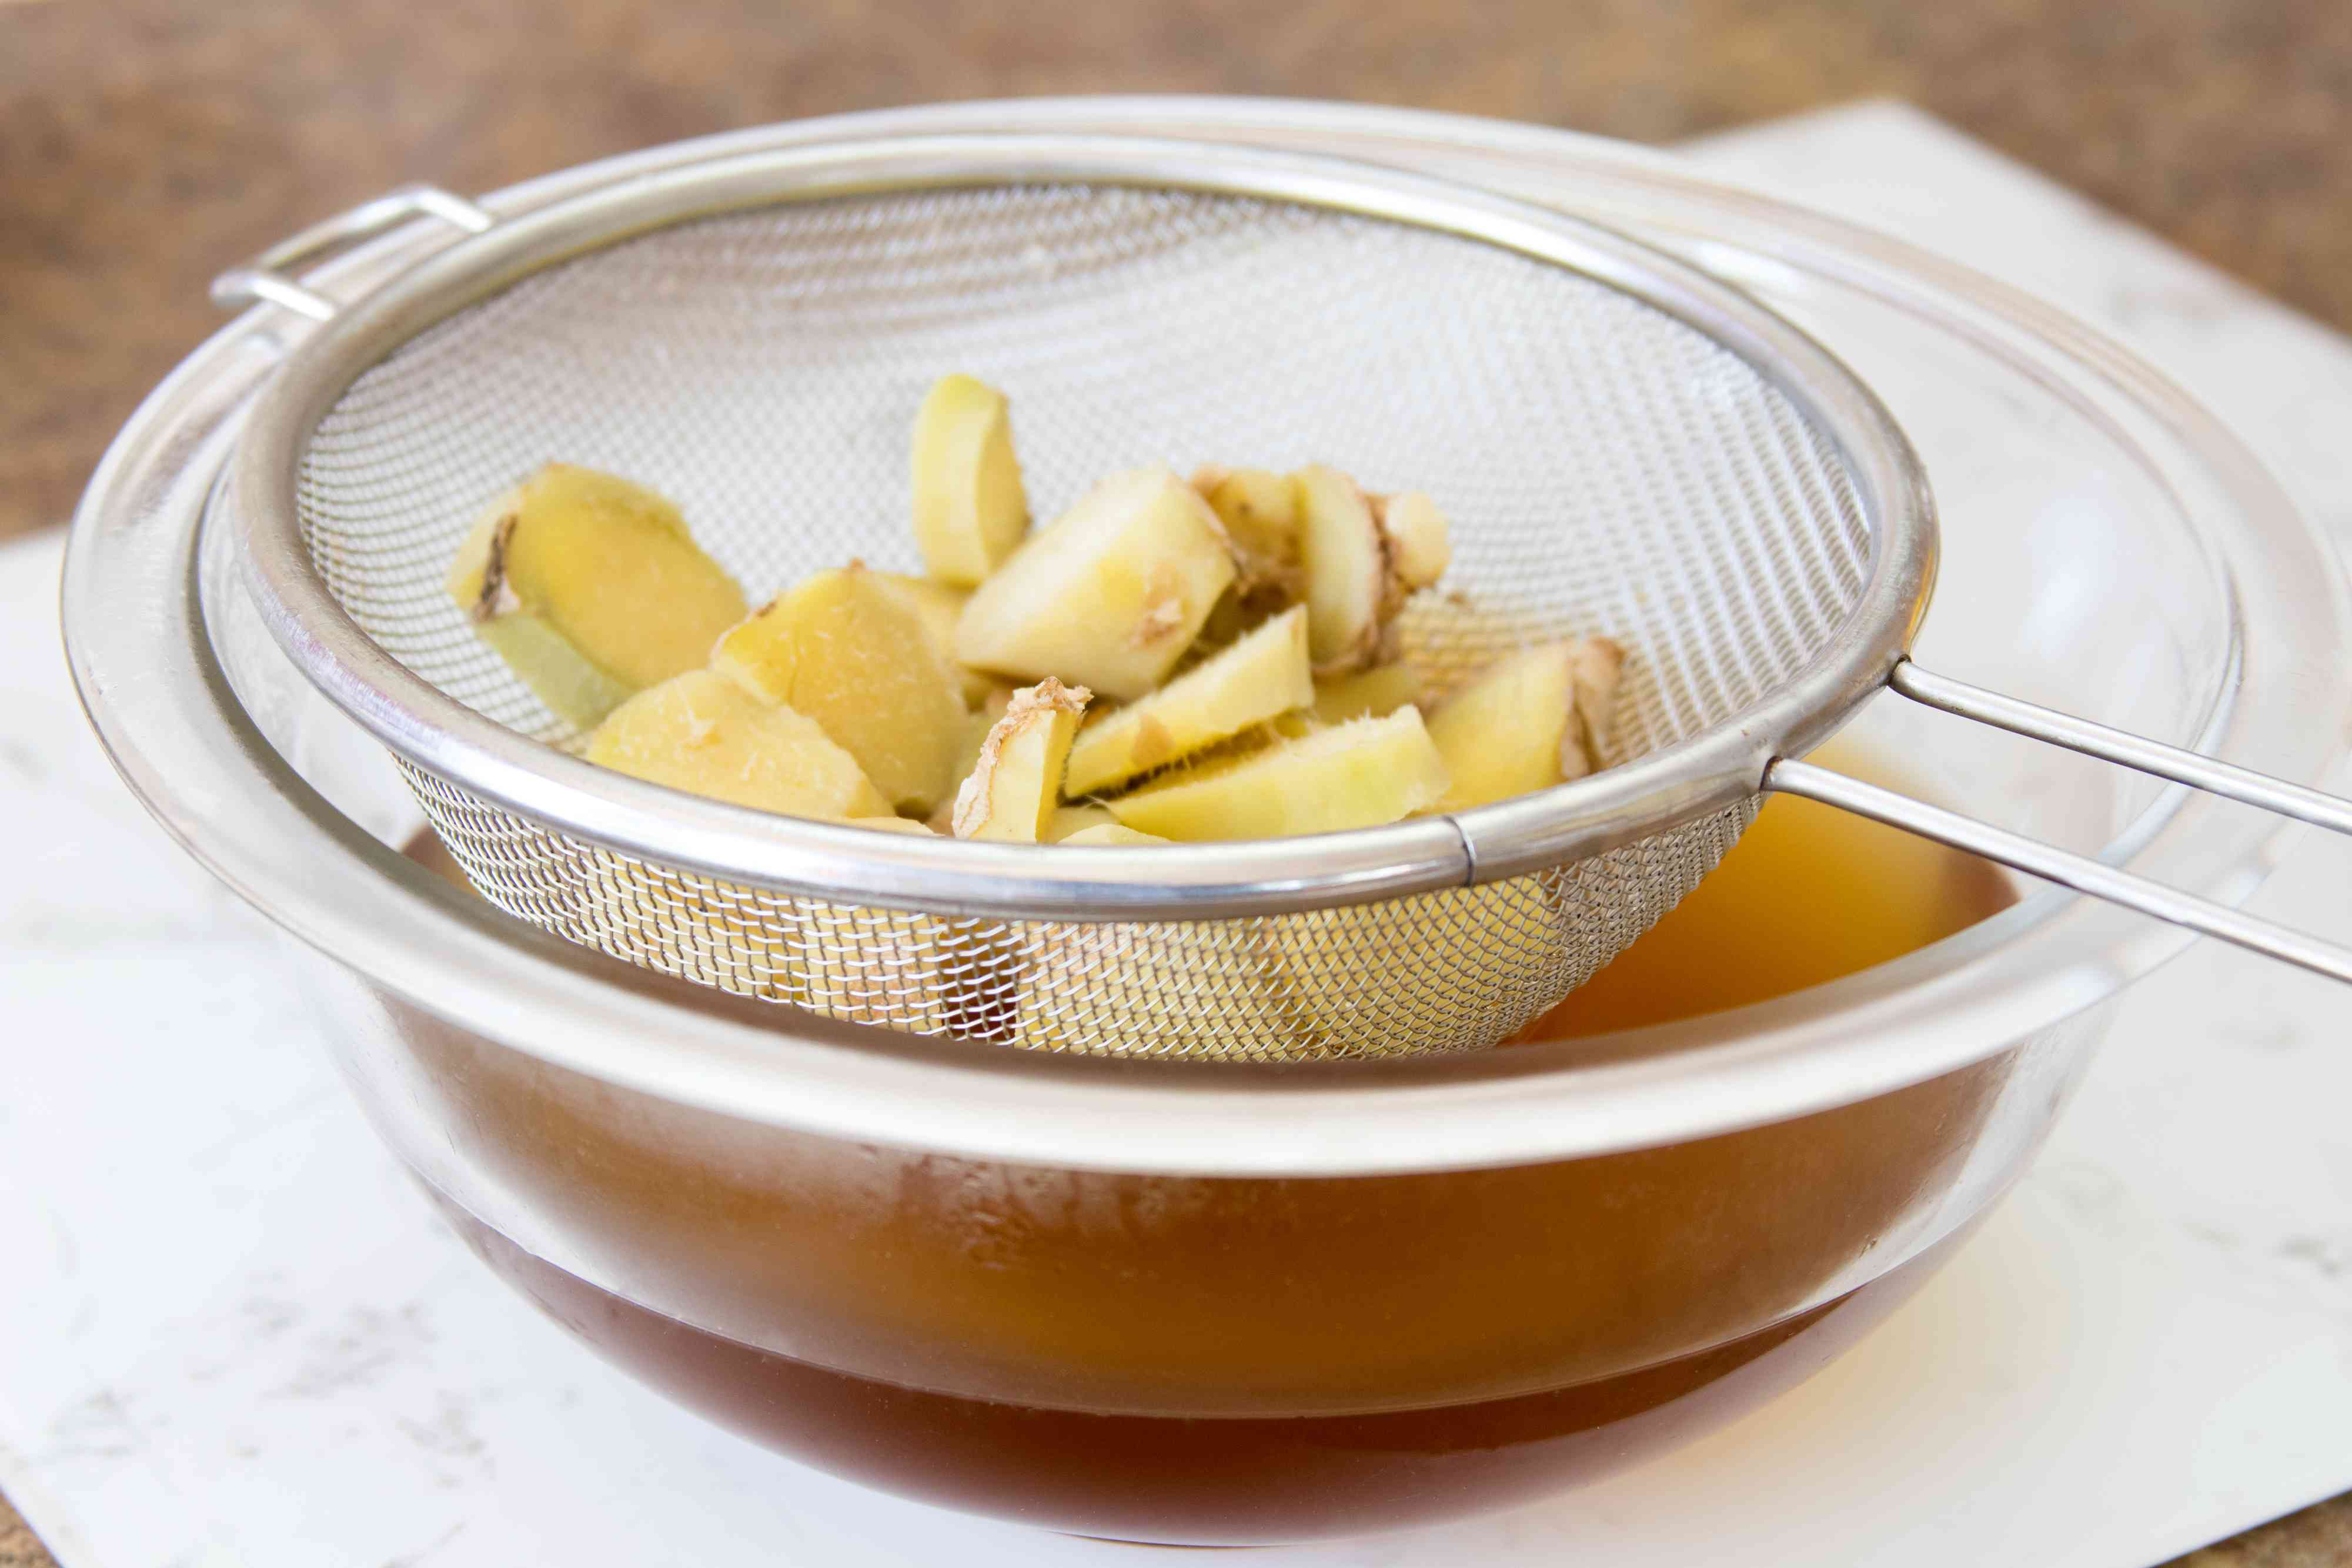 Straining Ginger From Fresh Syrup